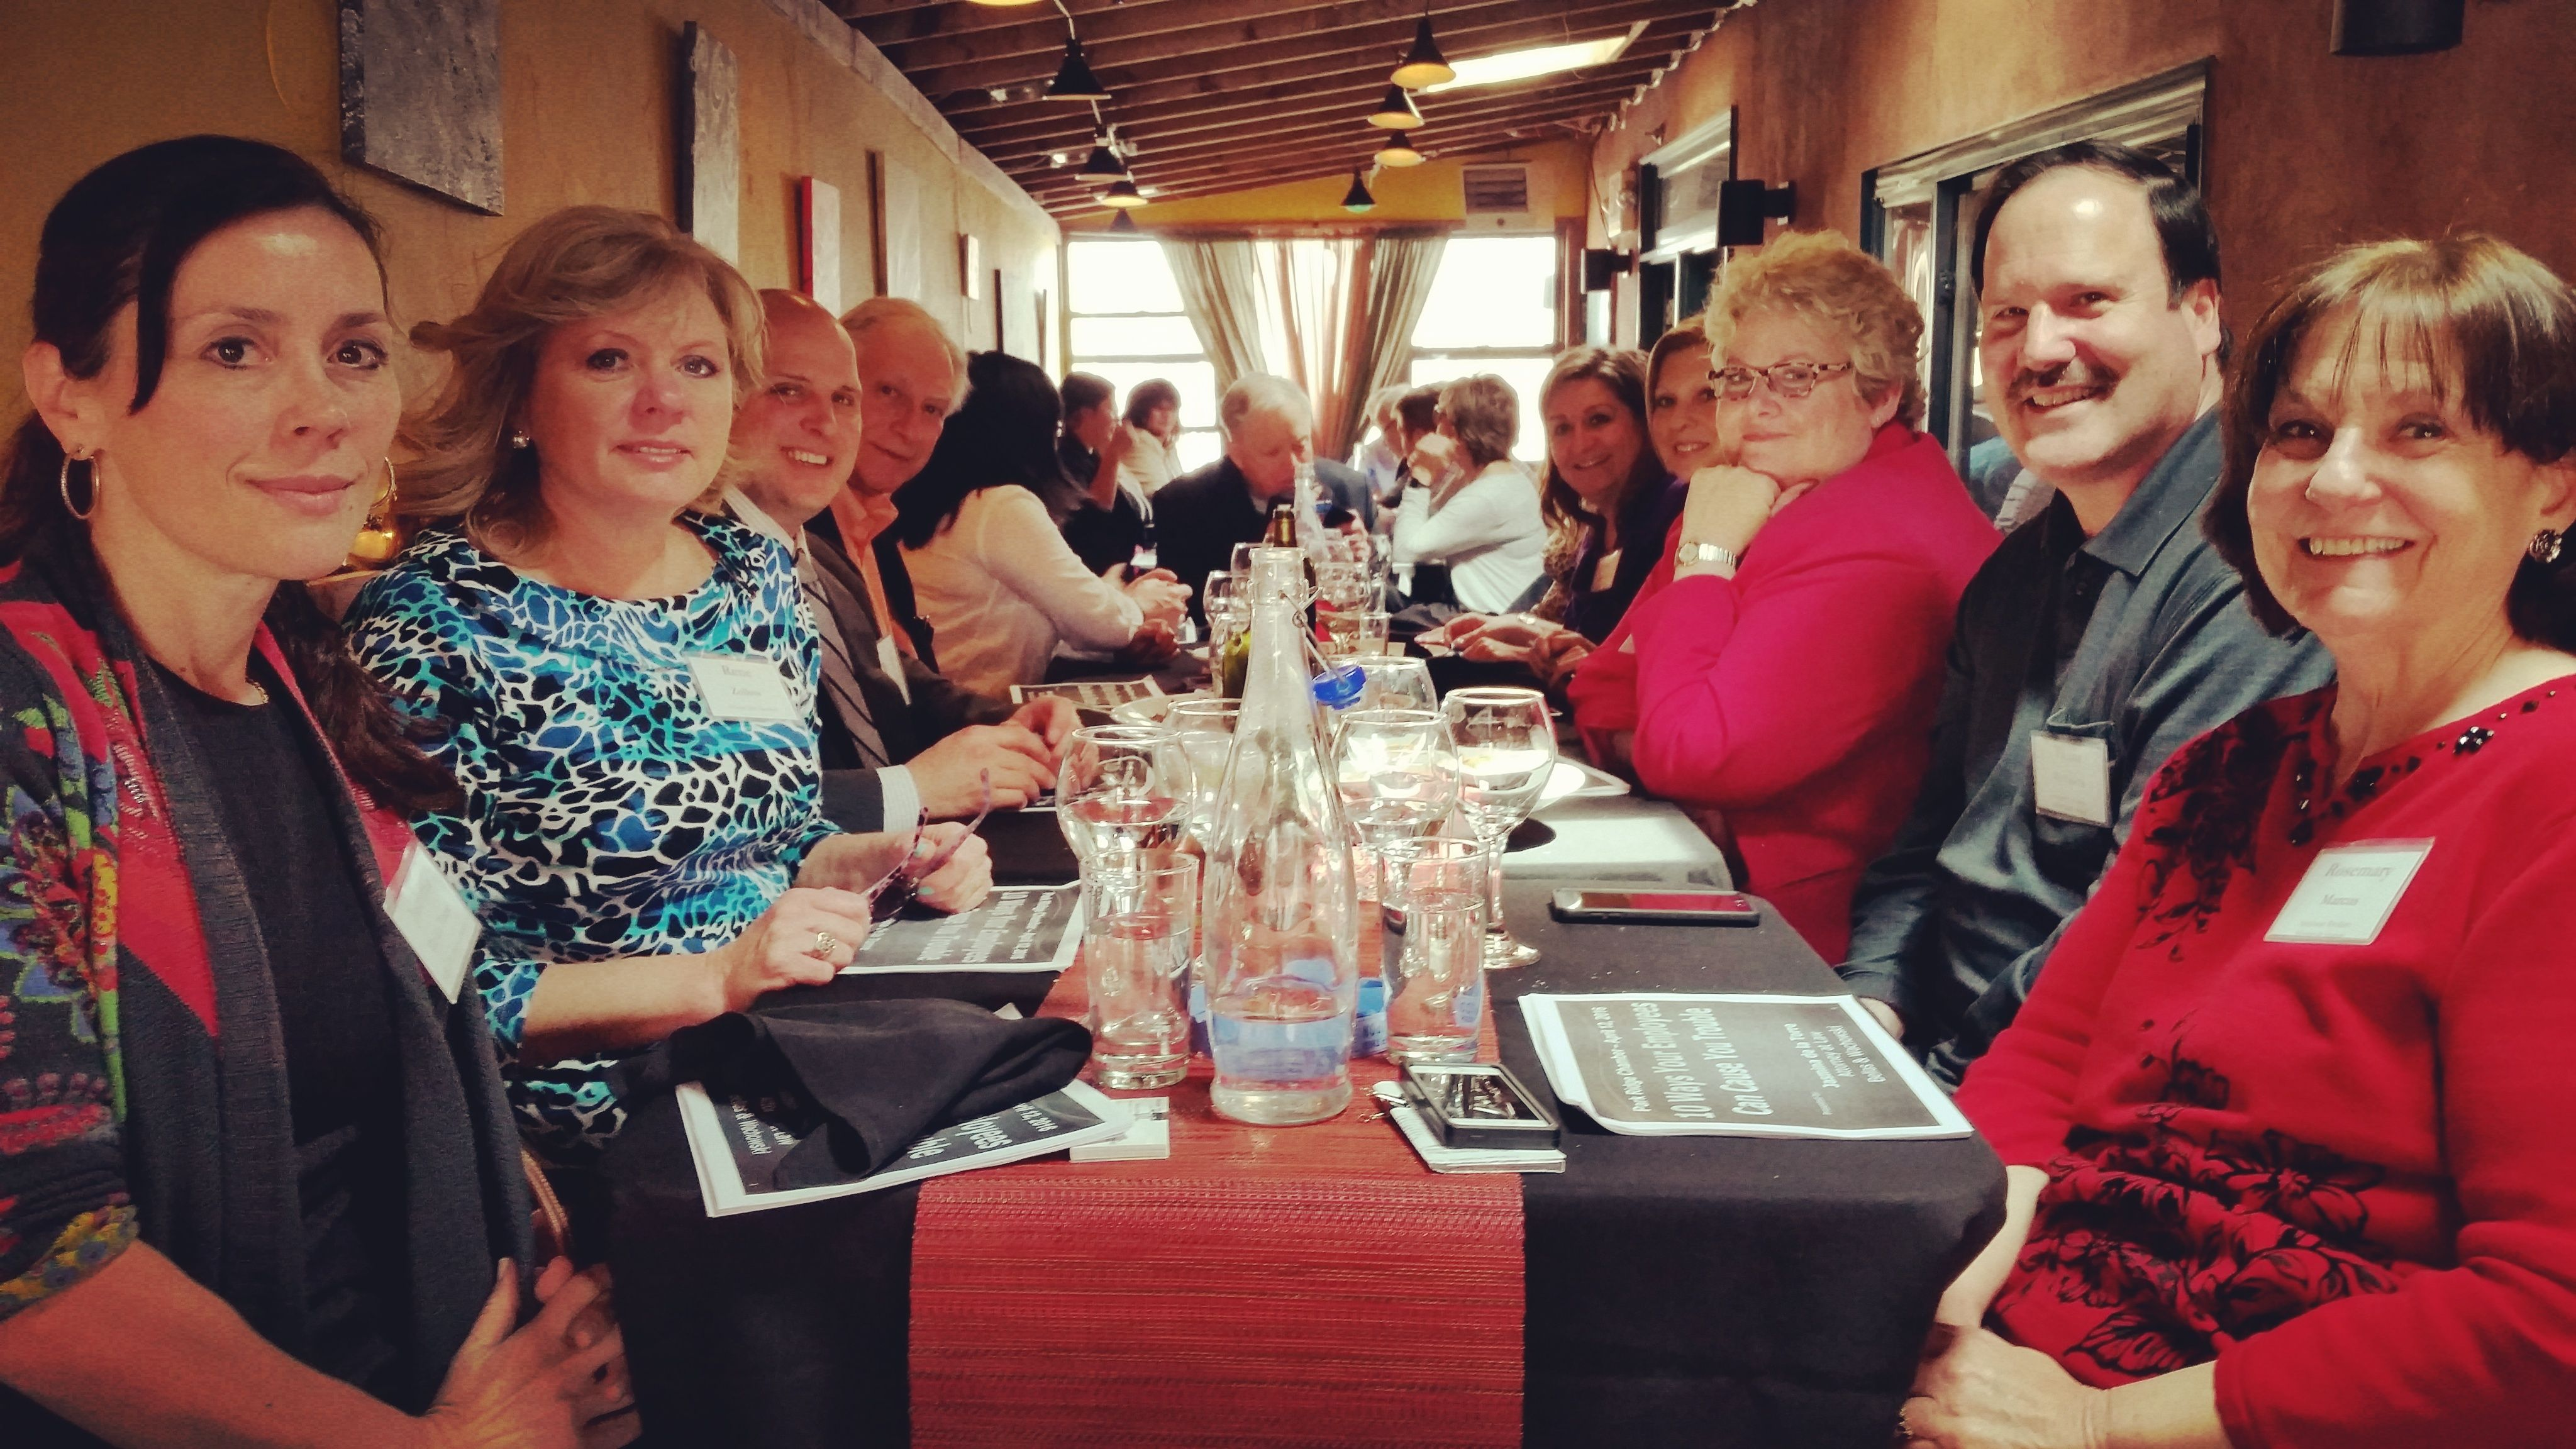 Great photo of the group from our Monthly Networking Luncheon at Affresco. Everything was delicious!